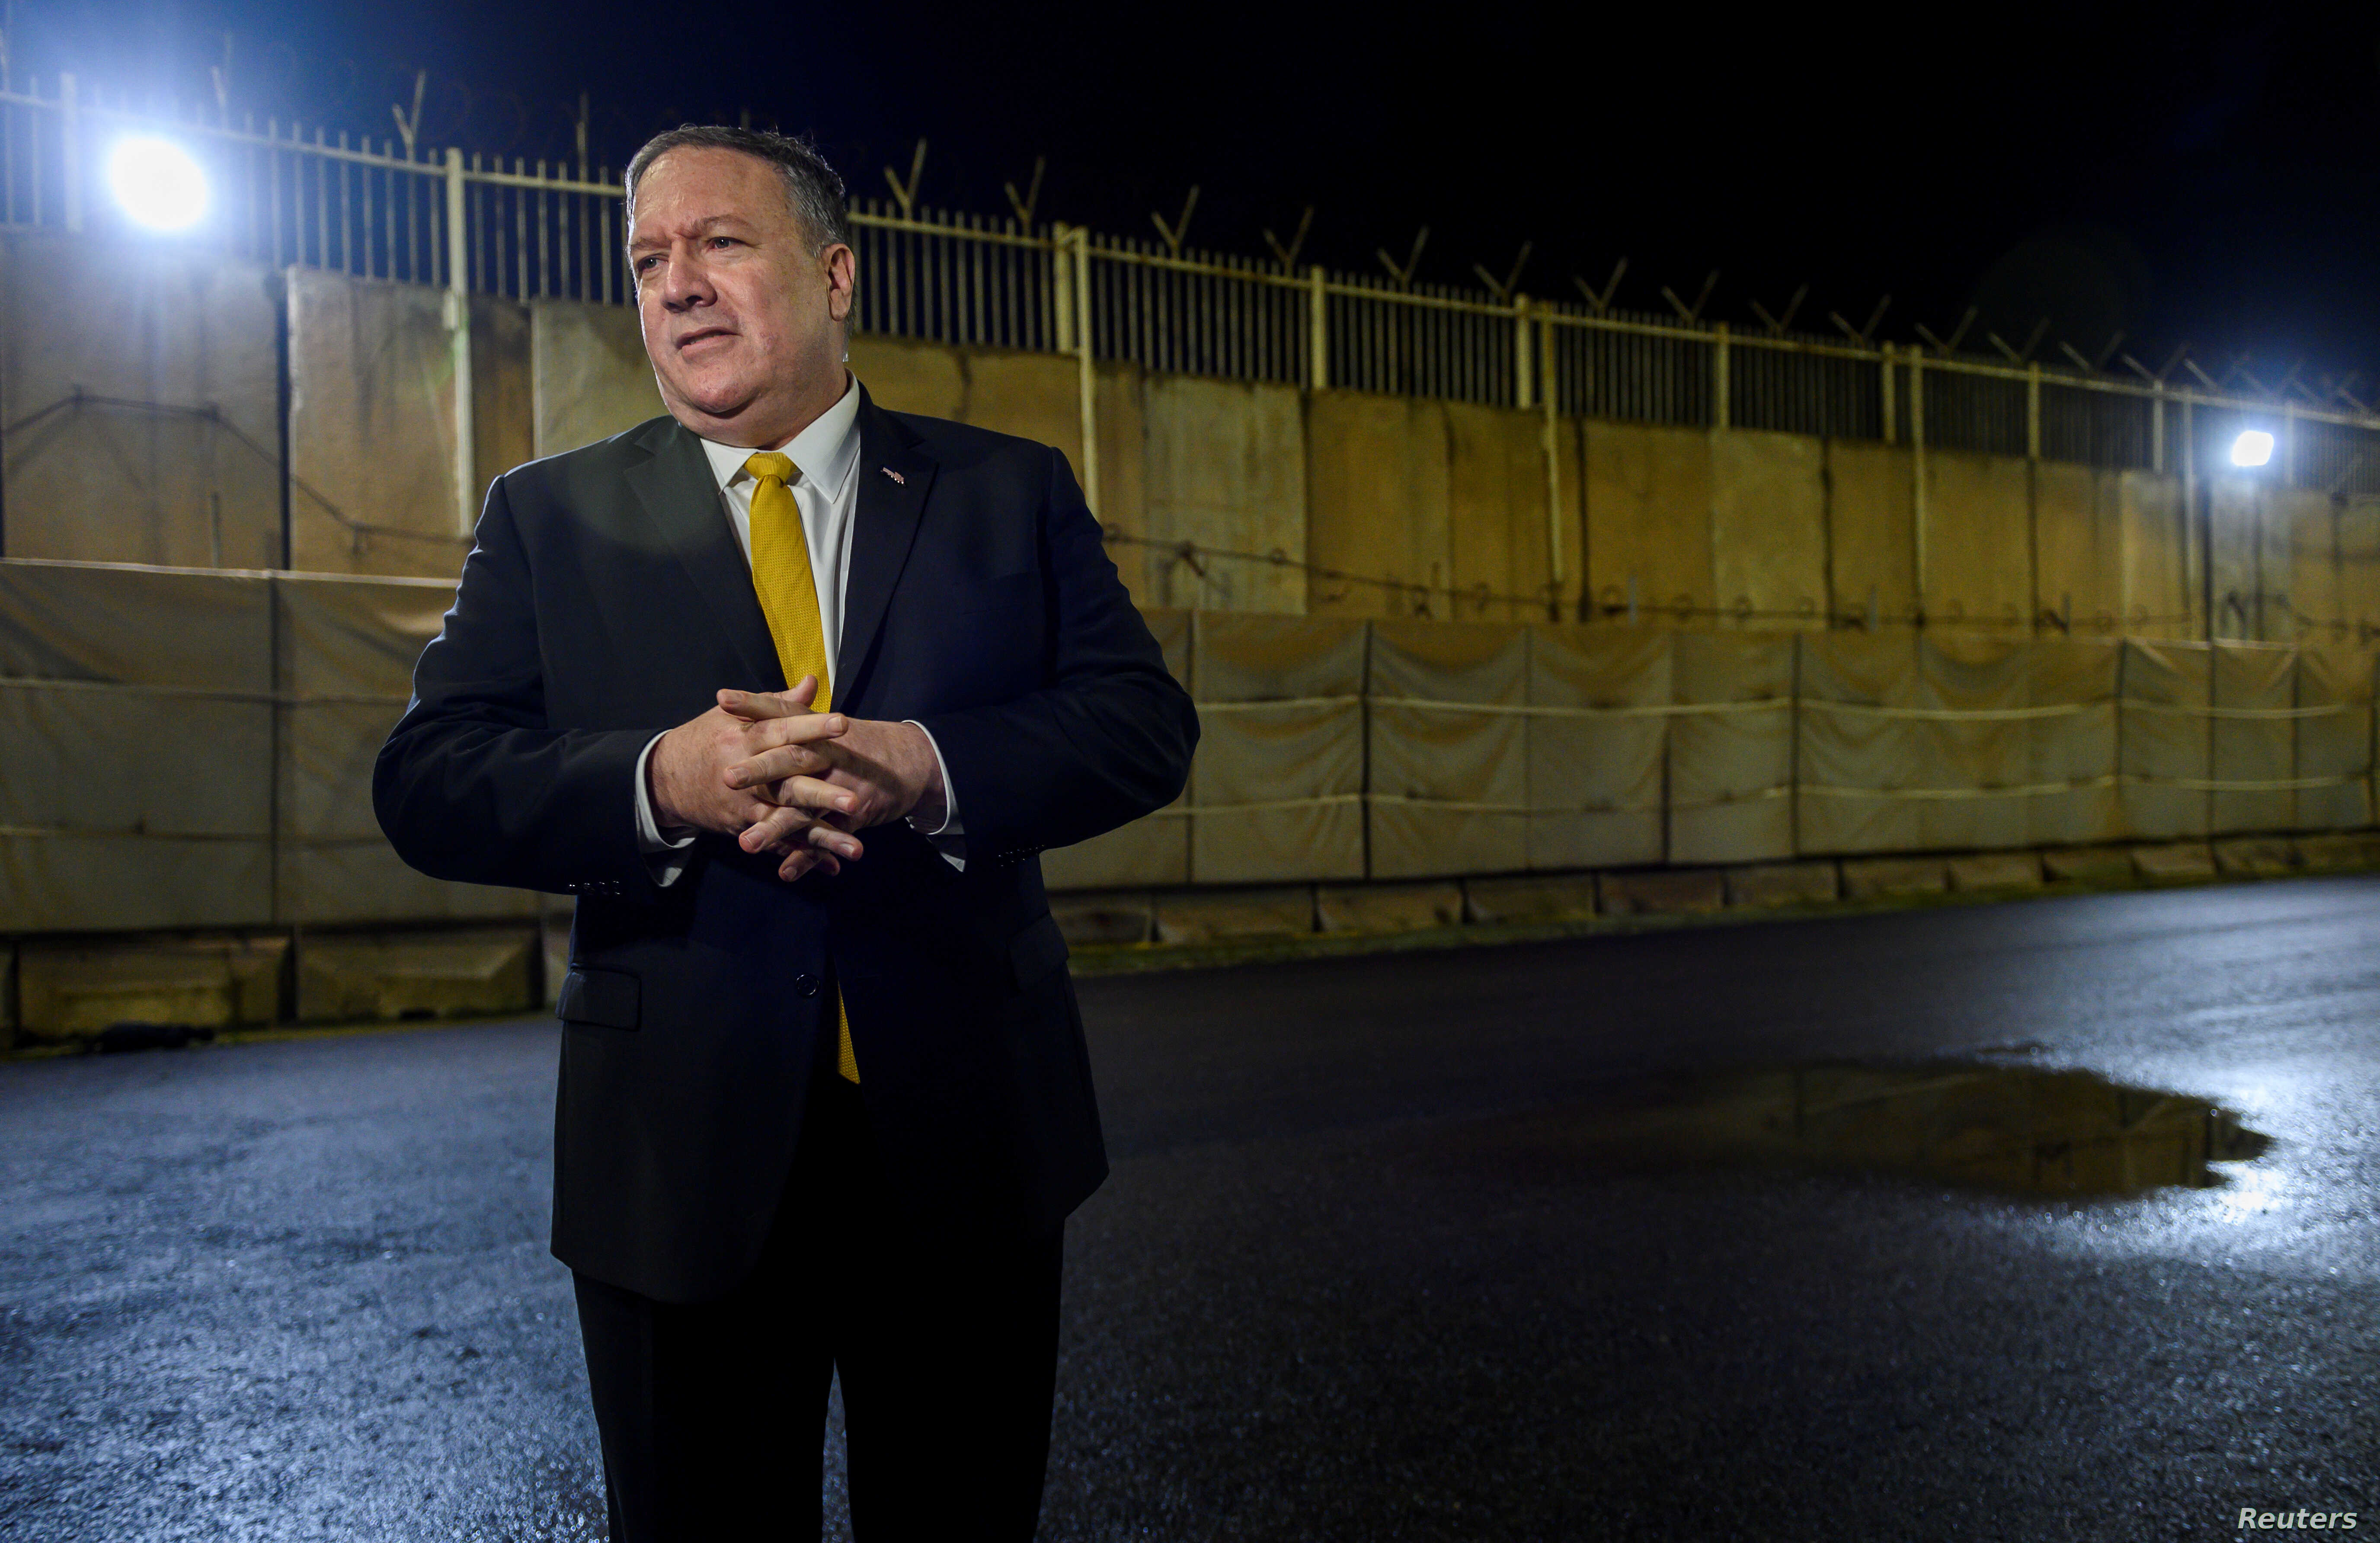 U.S. Secretary of State Mike Pompeo speaks to the press at the U.S. Embassy compound in Baghdad, Iraq, Jan. 9, 2019.